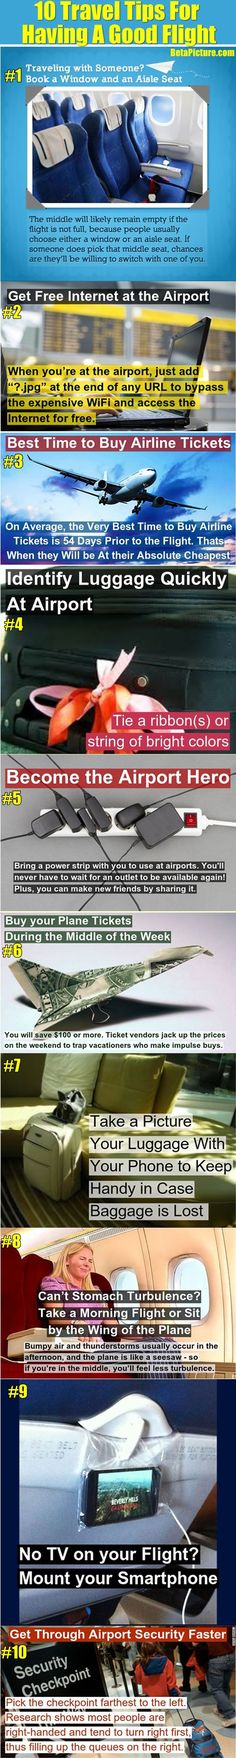 10 Travel Tips To Have A Good Flight.